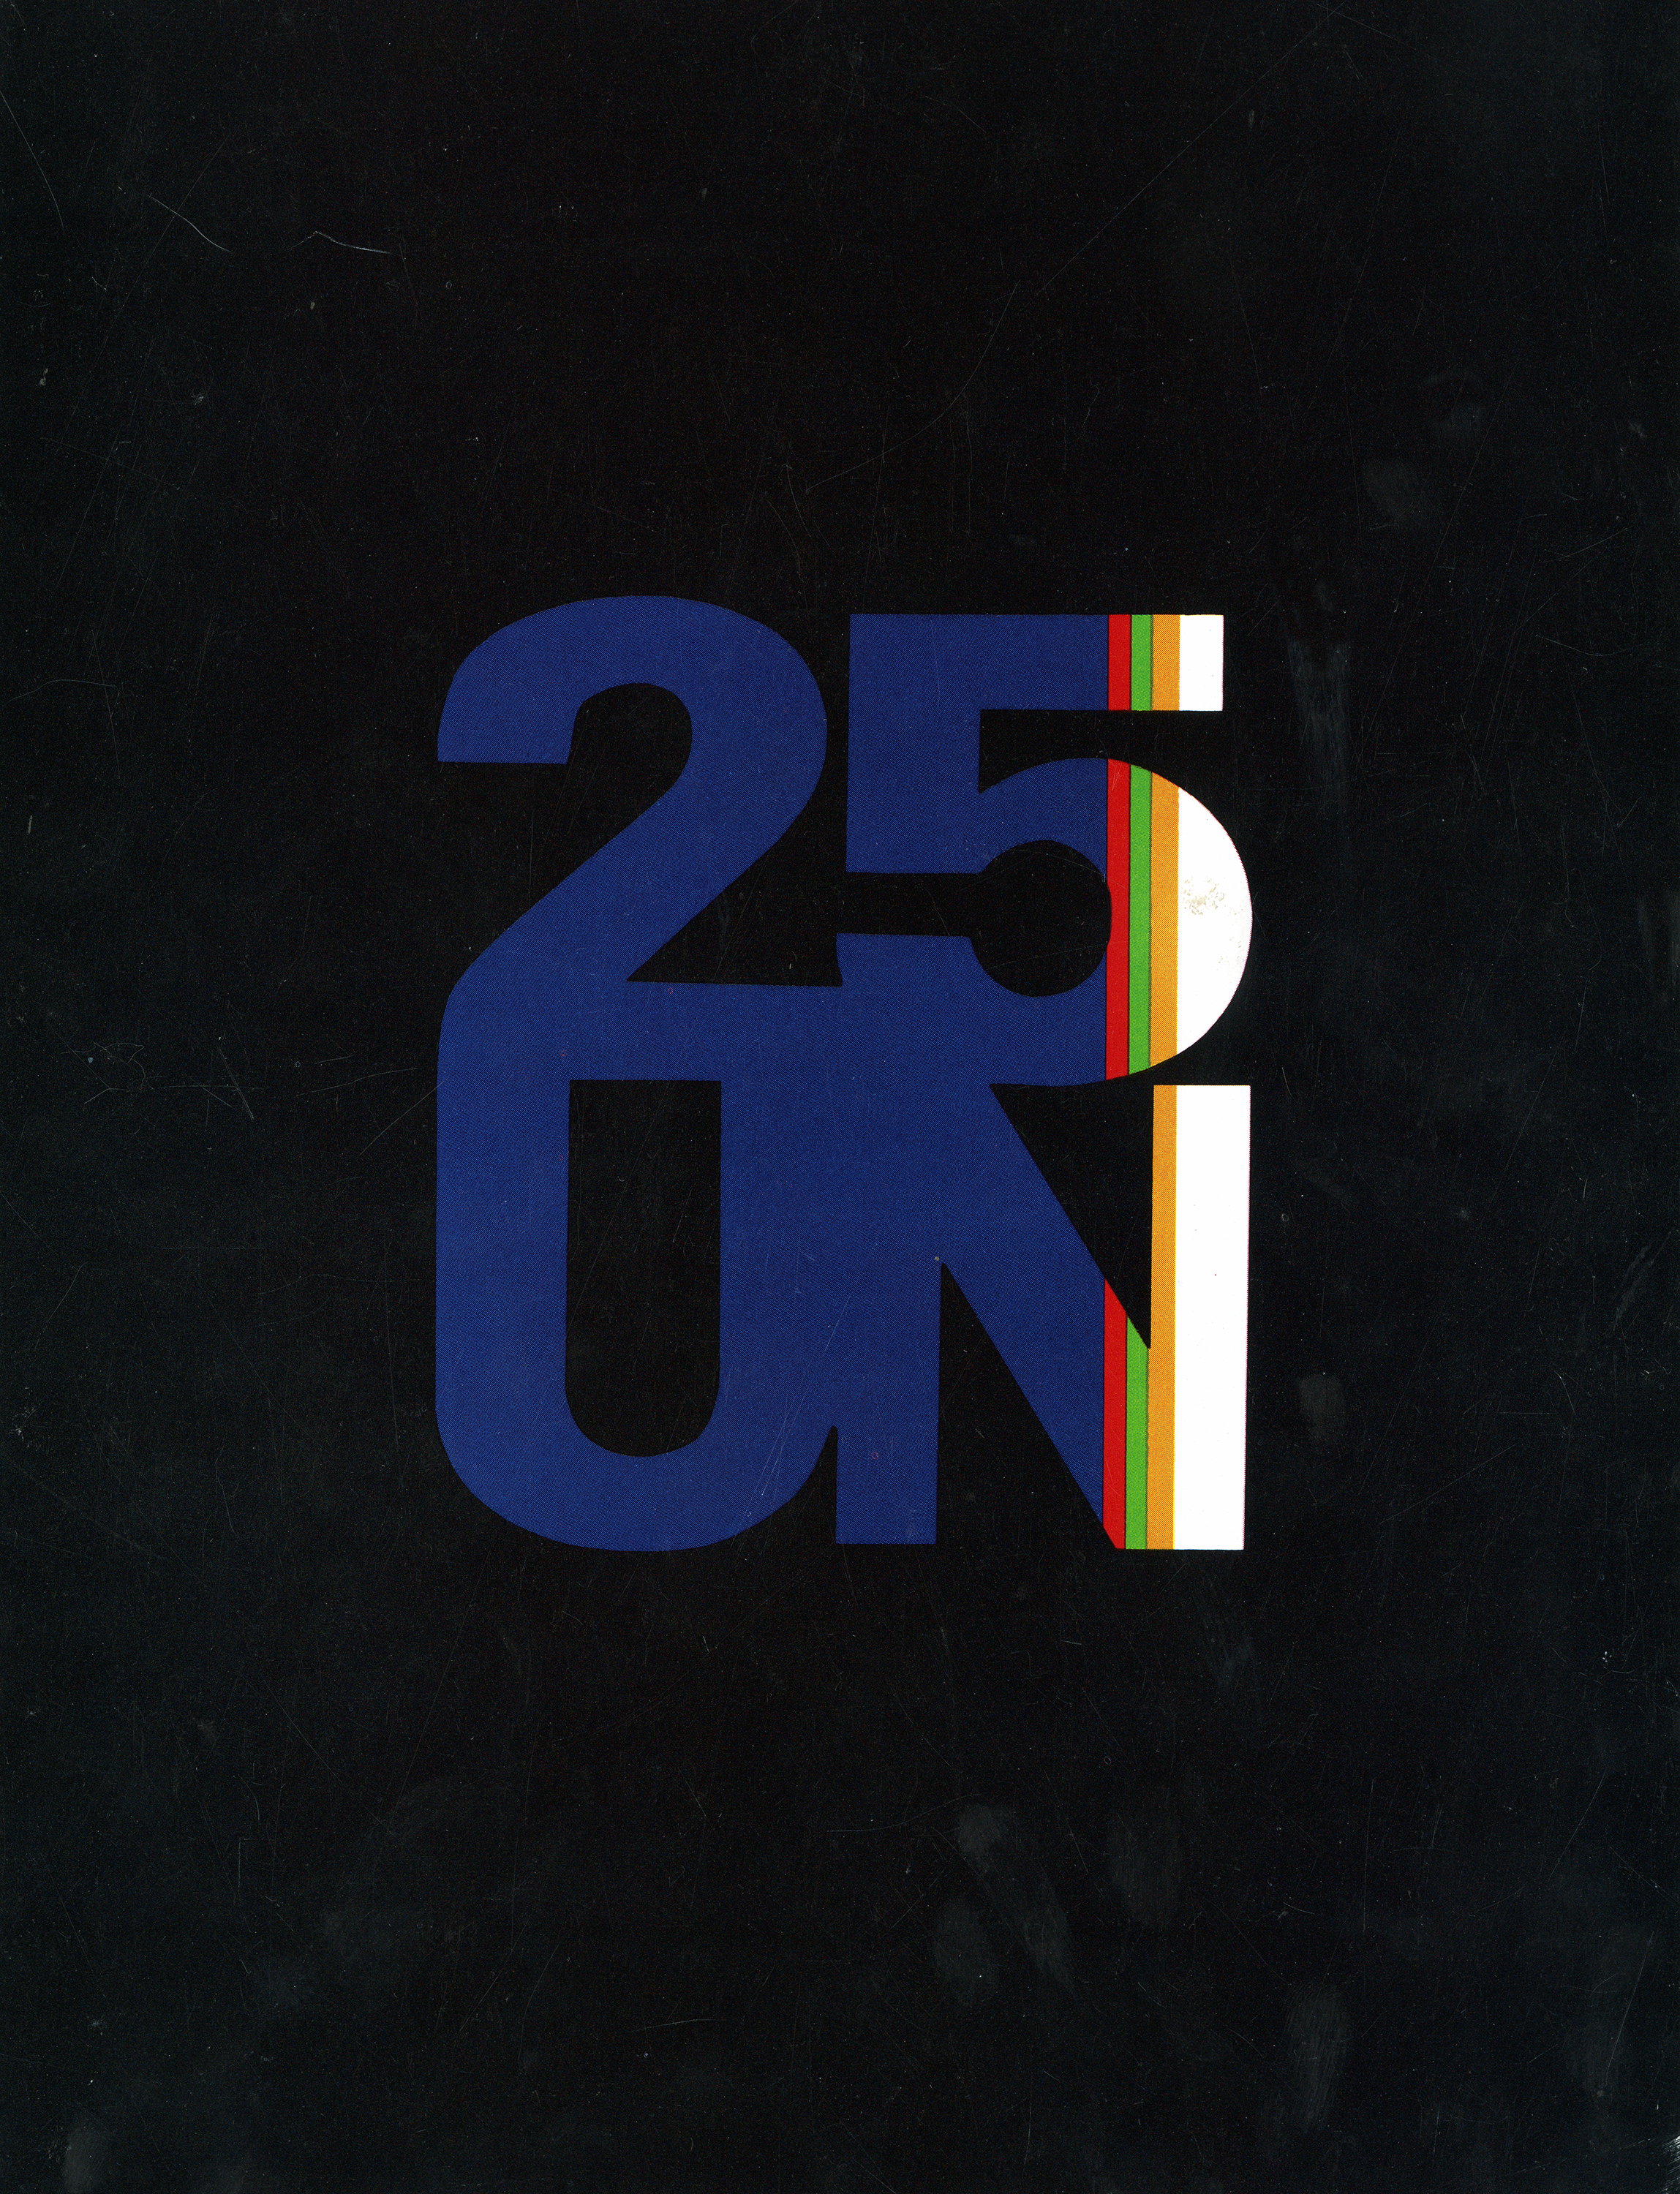 "Booklet cover with the characters ""25 UN"" in large, mostly blue, font with red, green, orange, and white stripes on the right edge, against a black background."